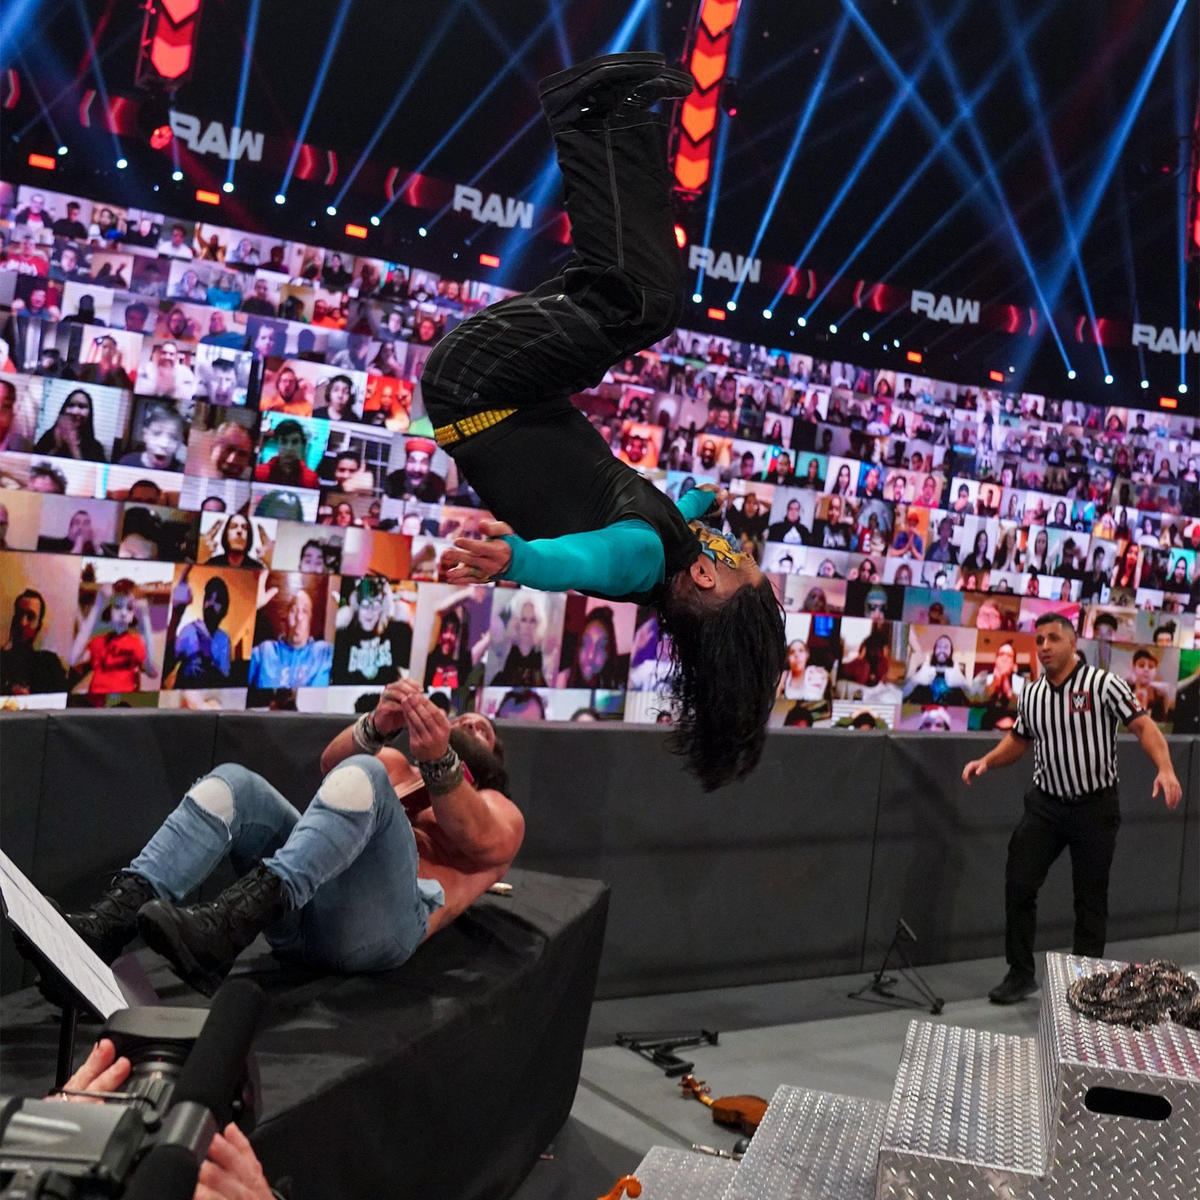 Update On Jeff Hardy And Elias After Scary Incident On WWE Raw 1